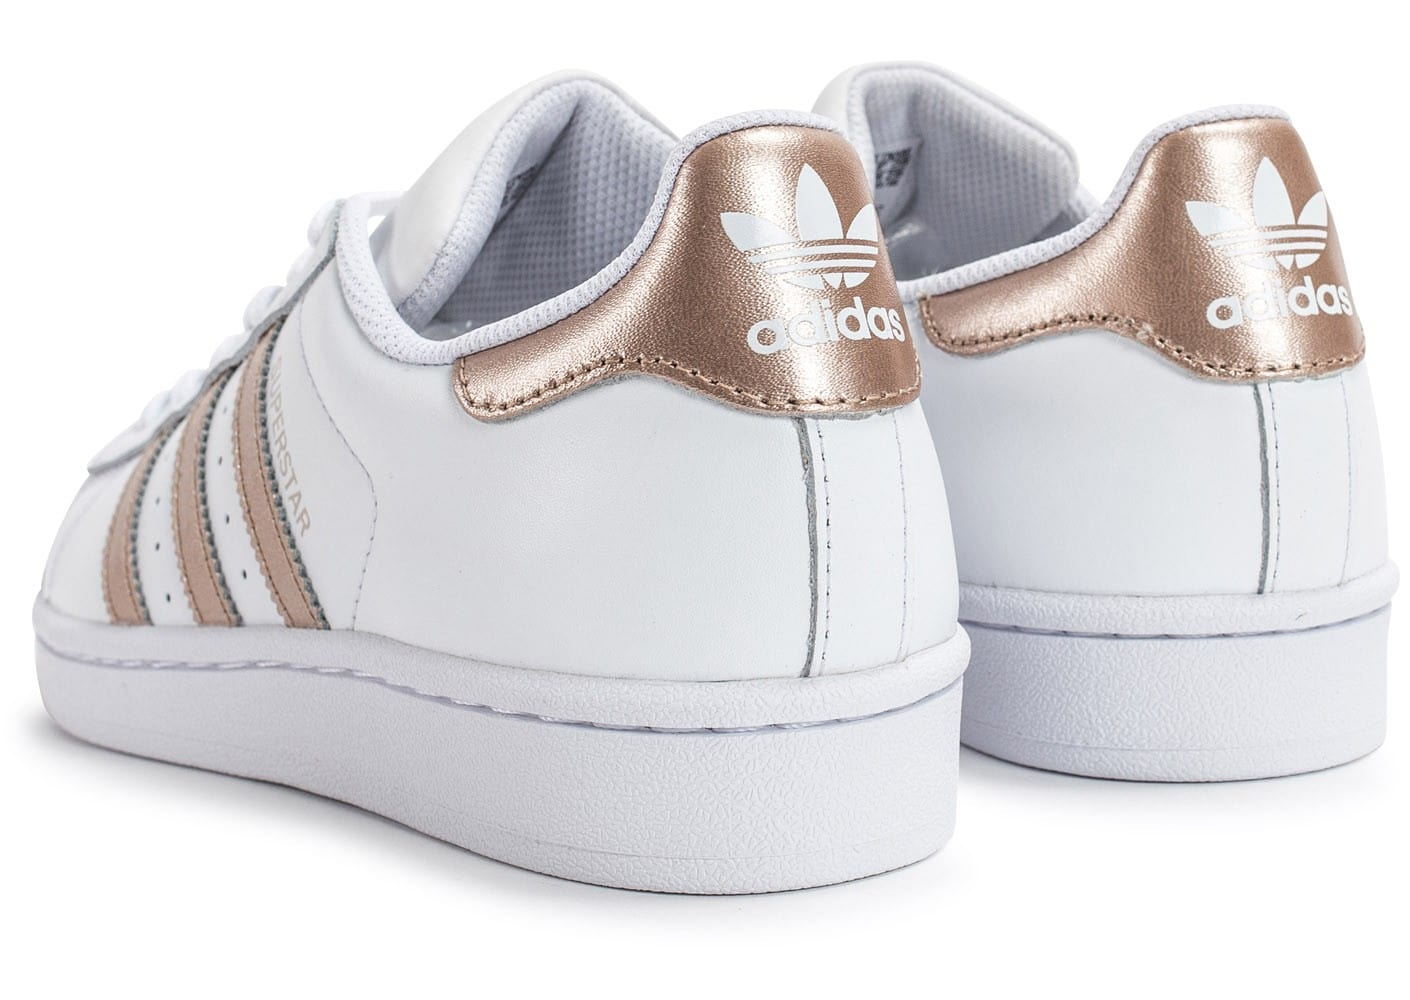 Chausport Adidas Chaussures W Rose Gold Superstar ww7q1Z